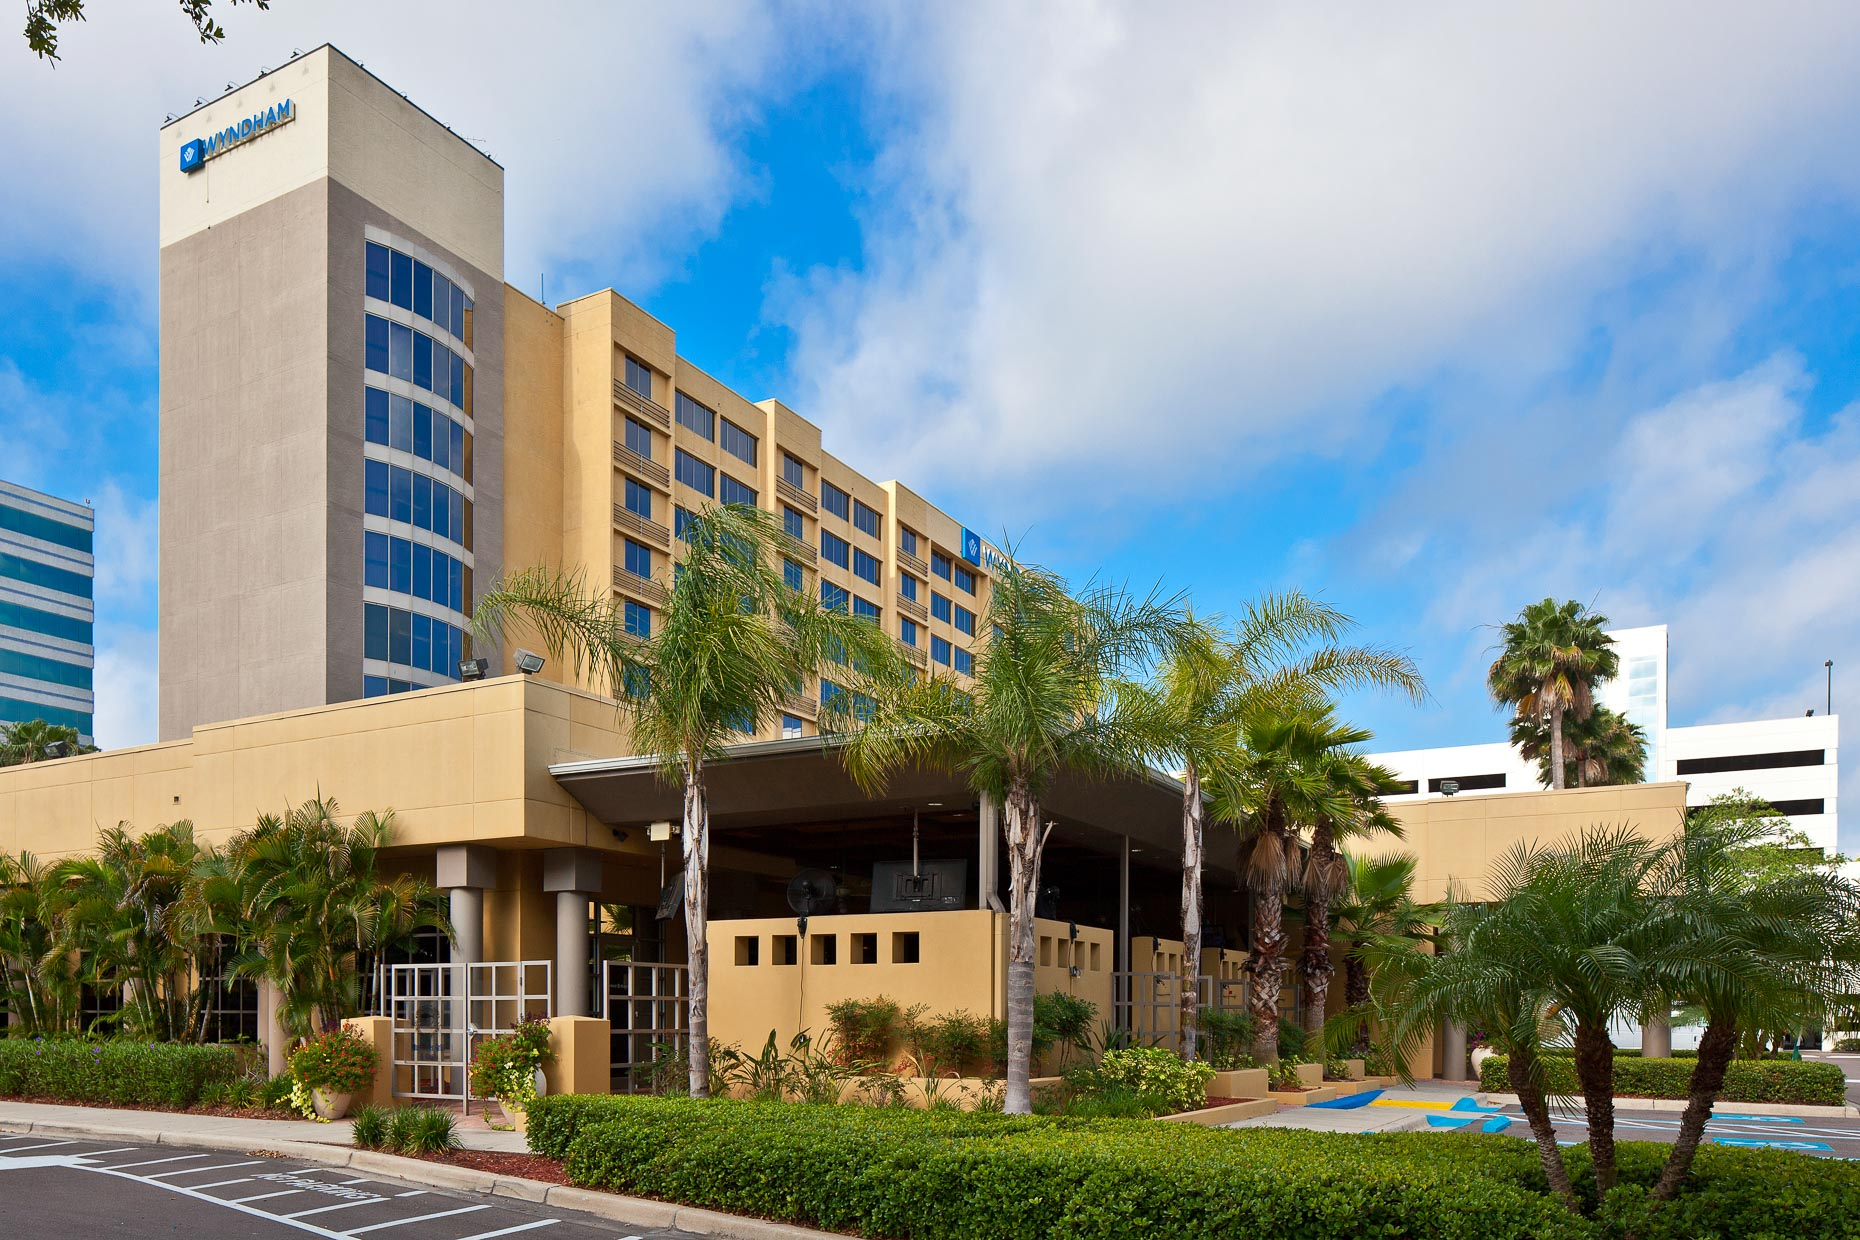 Wyndham Hotel - Mark Borosch Photography - Tampa. FL